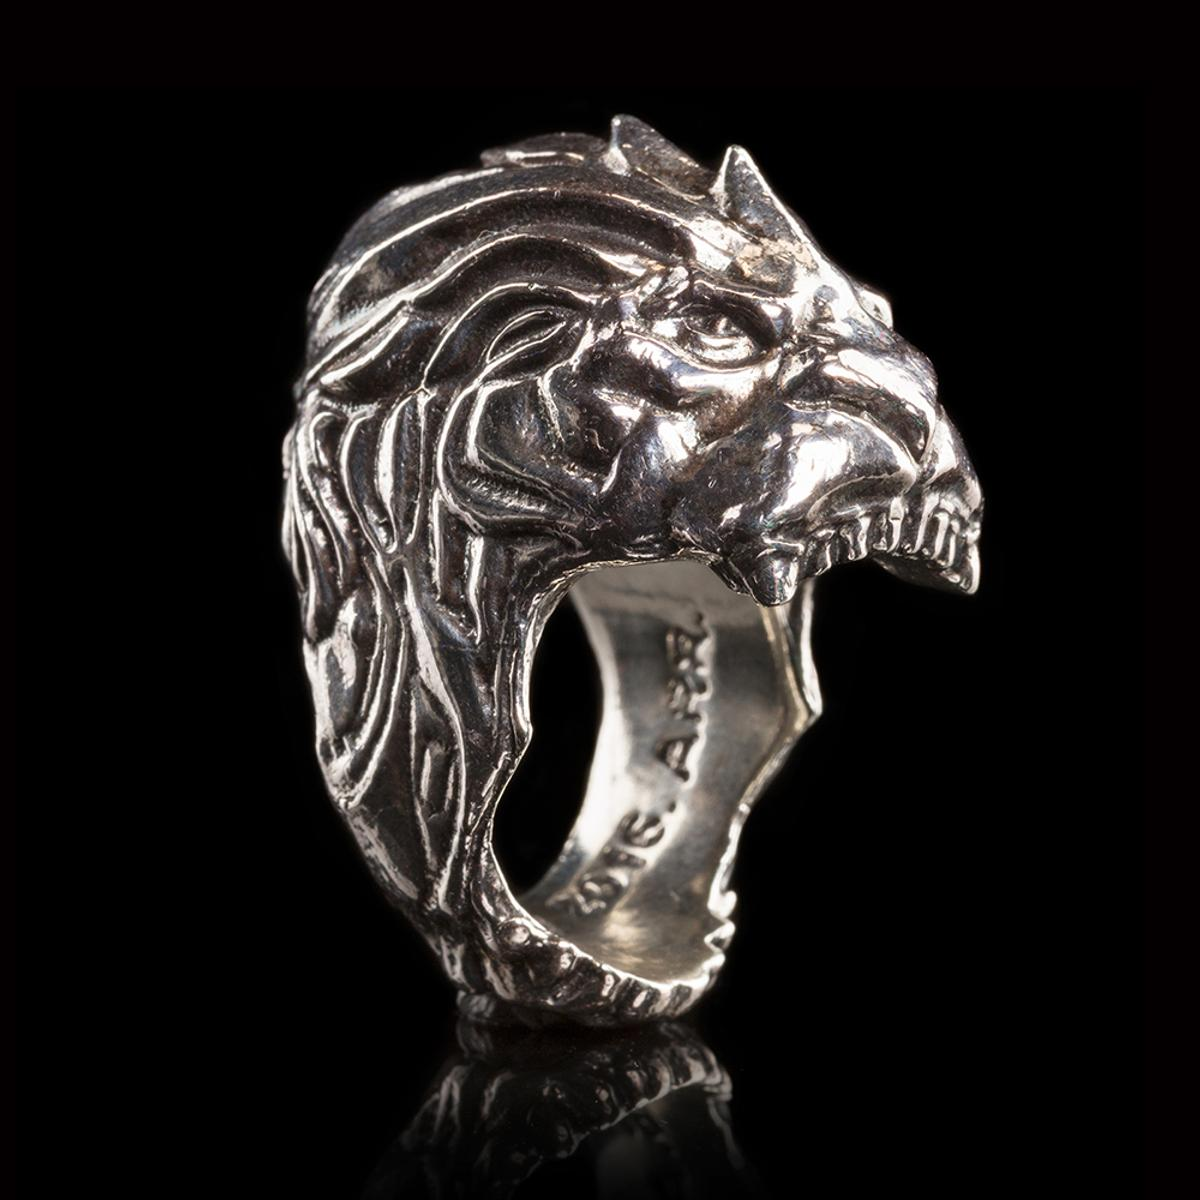 CHUNKY, LION HEAD STERLING SILVER RING.  Size: UK=P (1/2) USA= 8  Made by ROCKLOVE JEWELLERS, USA and based on the designs of the multi award winning artists at WETA WORKSHOP, NZ.  From the film 'WARCRAFT', this is the Royal Sigil ring of Alliance KING LLANE.  Very limited edition.  Heavy, solid ring with great design work made from pure sterling silver. Brand new with all original labels and Royal Blue velvet in bag.  Please note ring size as returns not accepted.